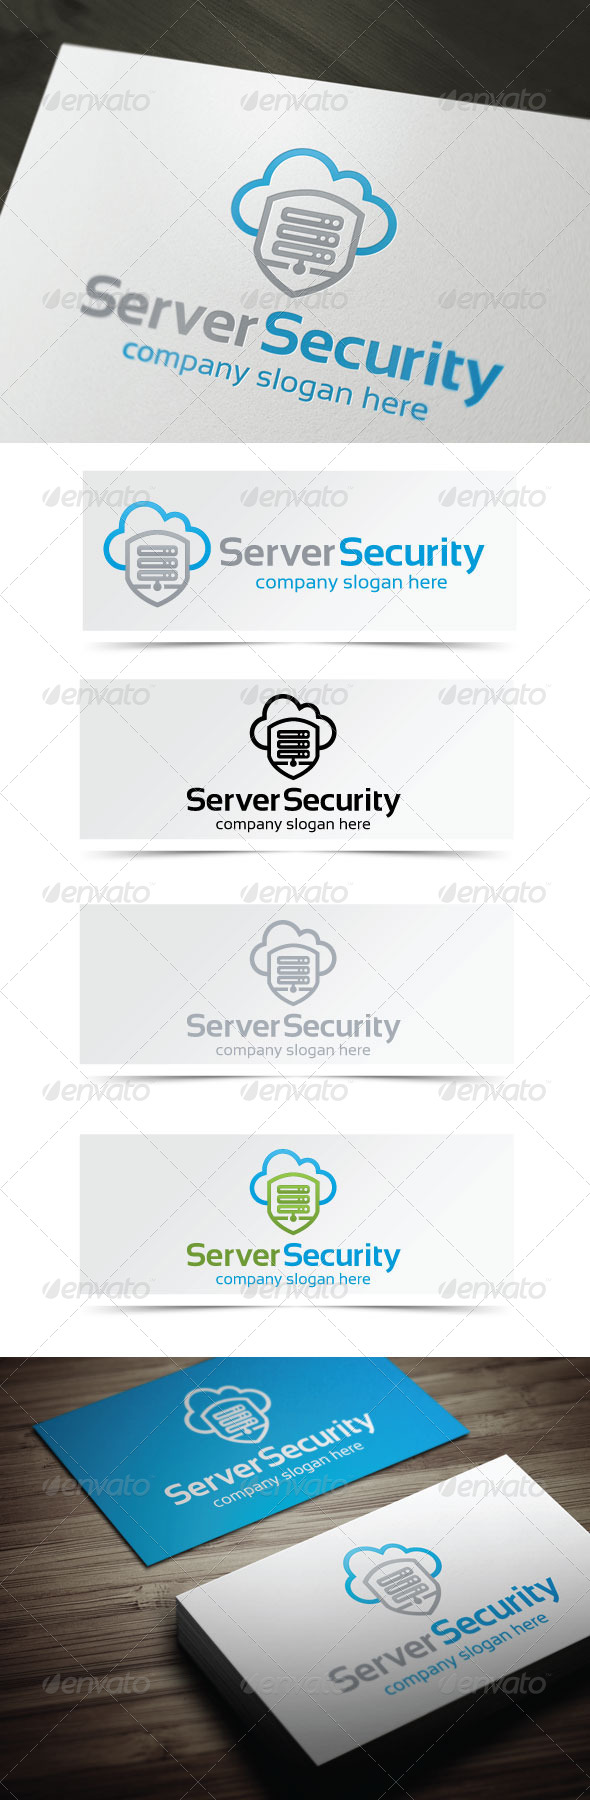 GraphicRiver Server Security 4588107